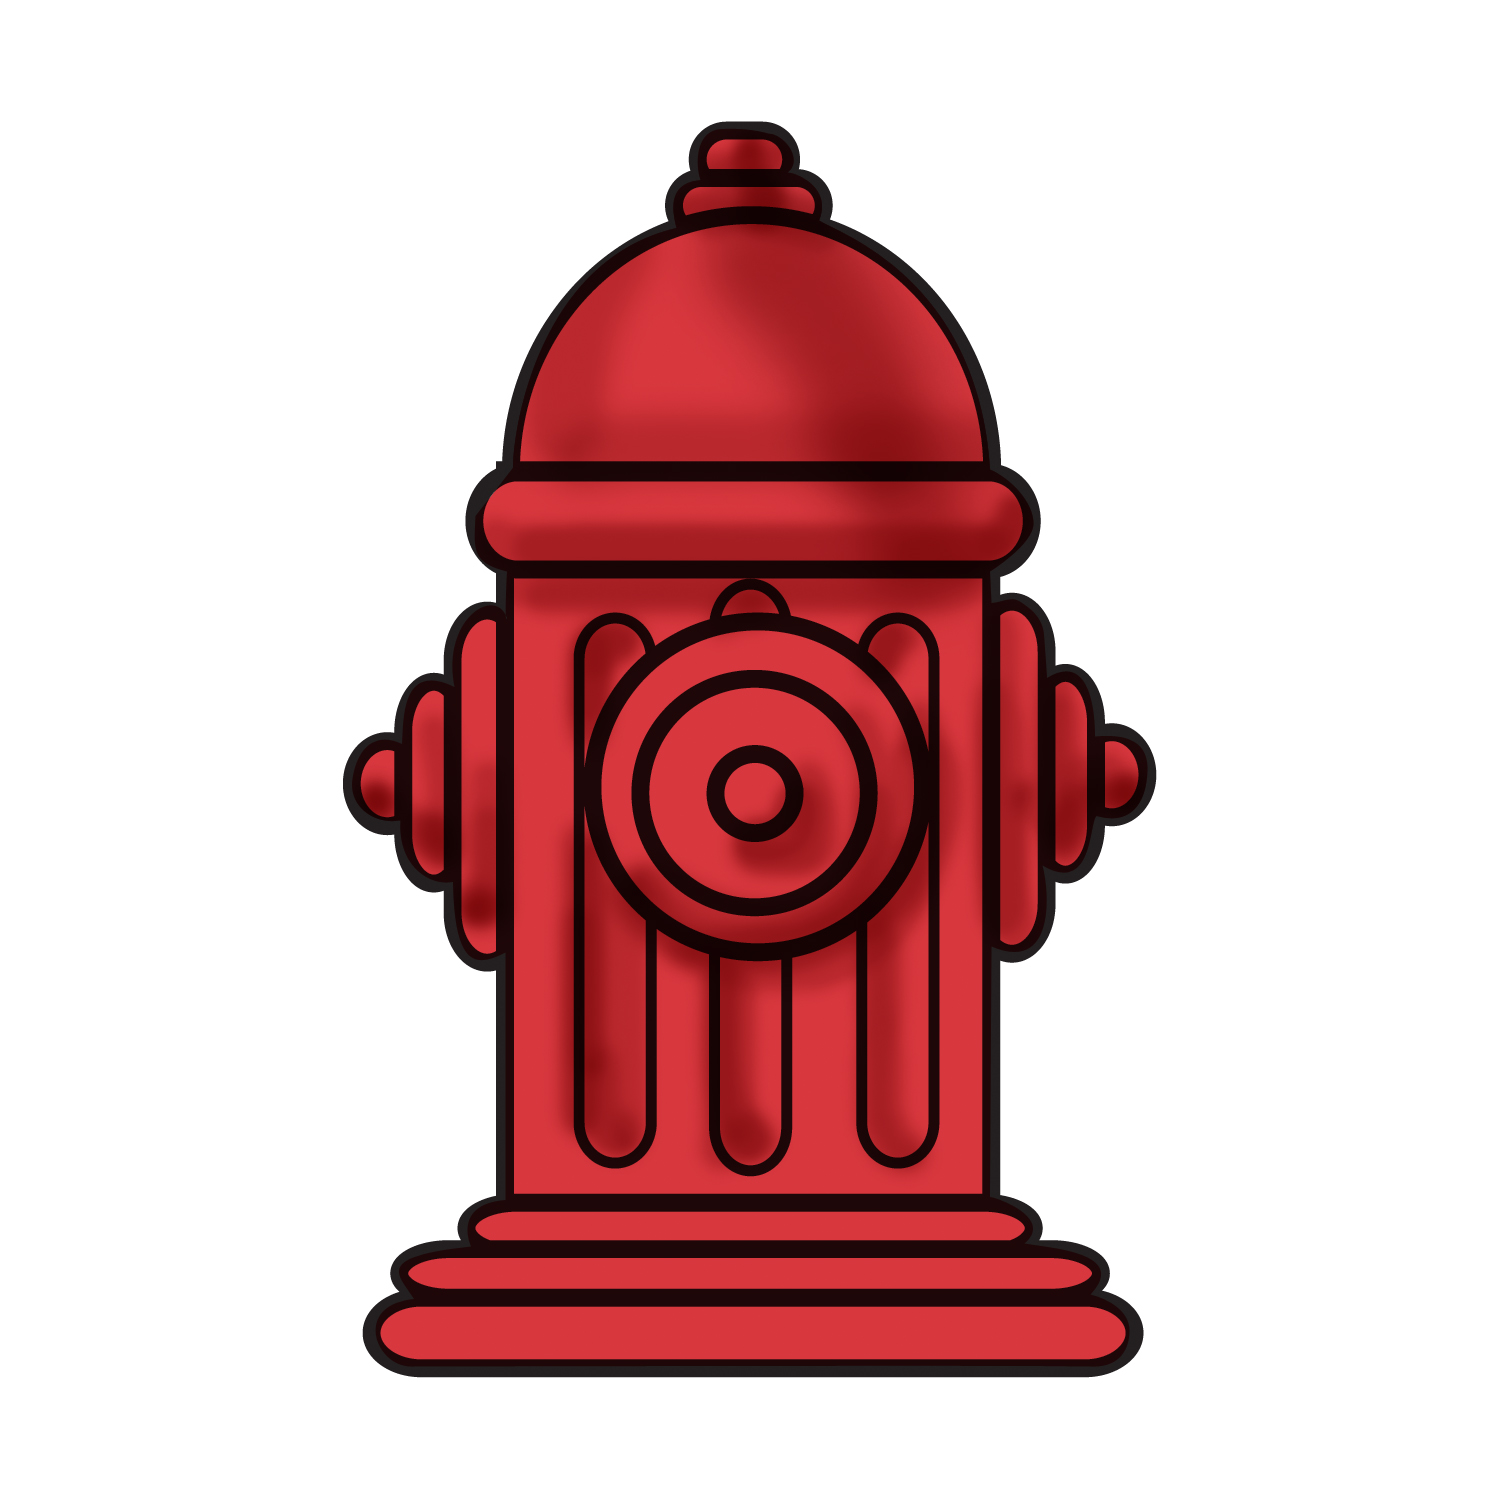 301 Fire Hydrant free clipart.